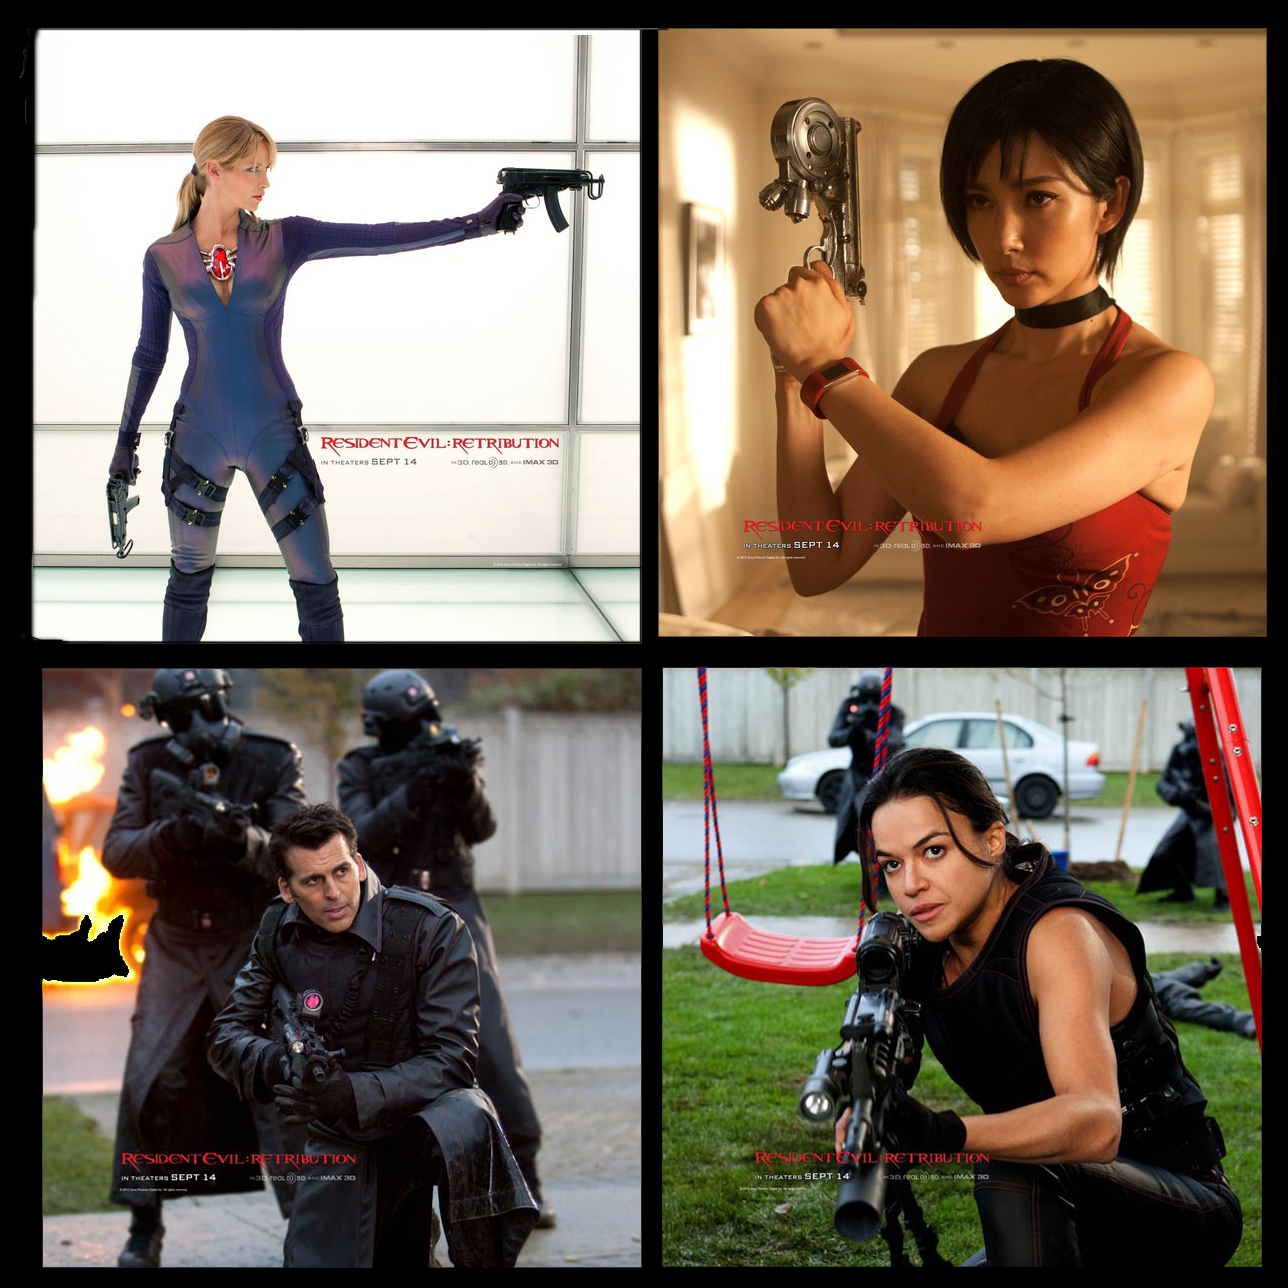 Resident Evil Retribution Shares Two New Hotties With Guns Pics